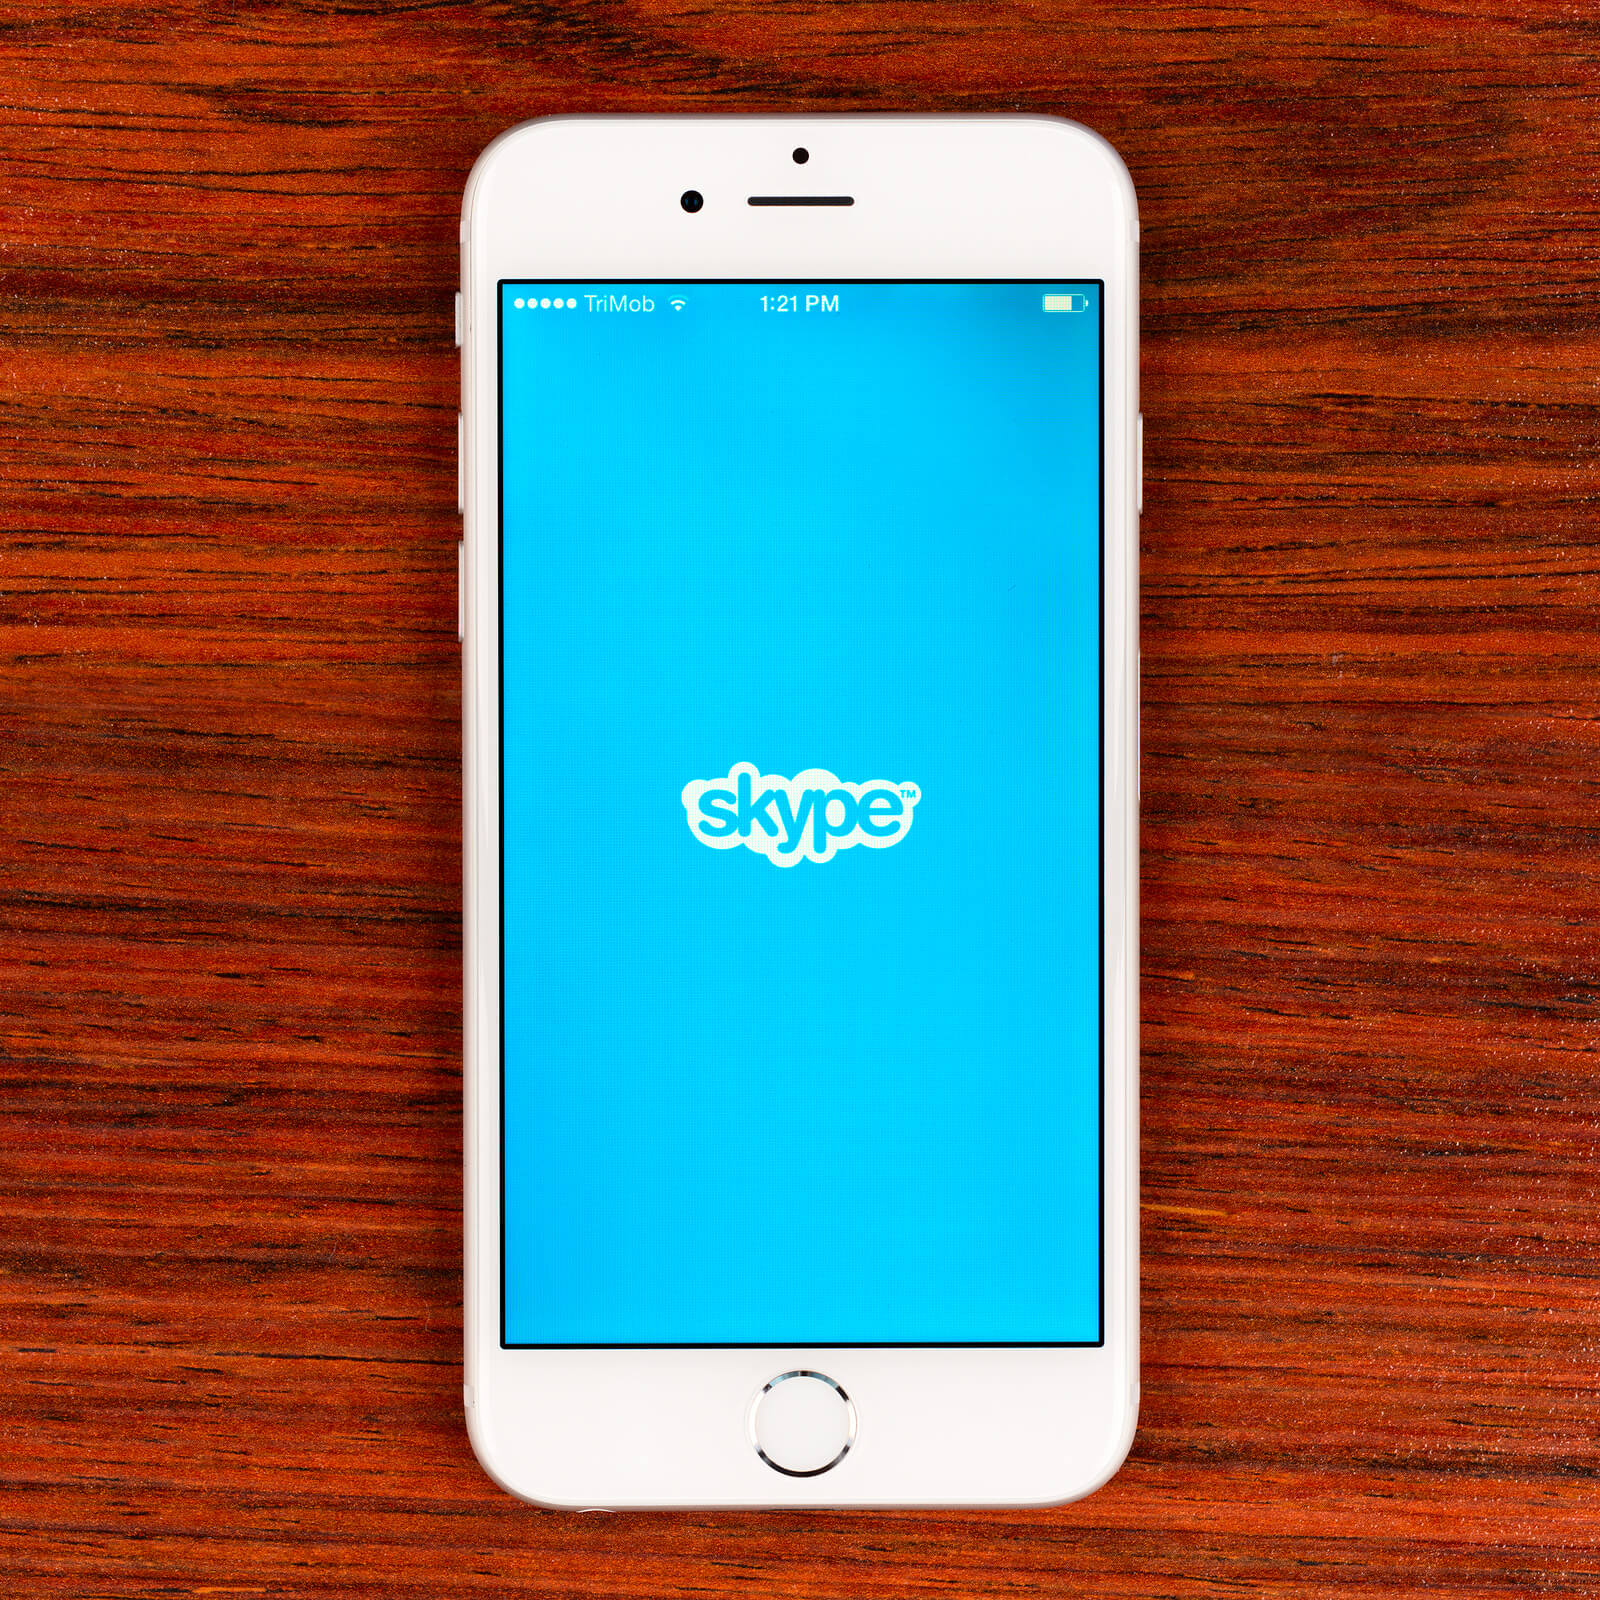 Technologist's and celebrity's opinion about Skype benefits and drawbacks